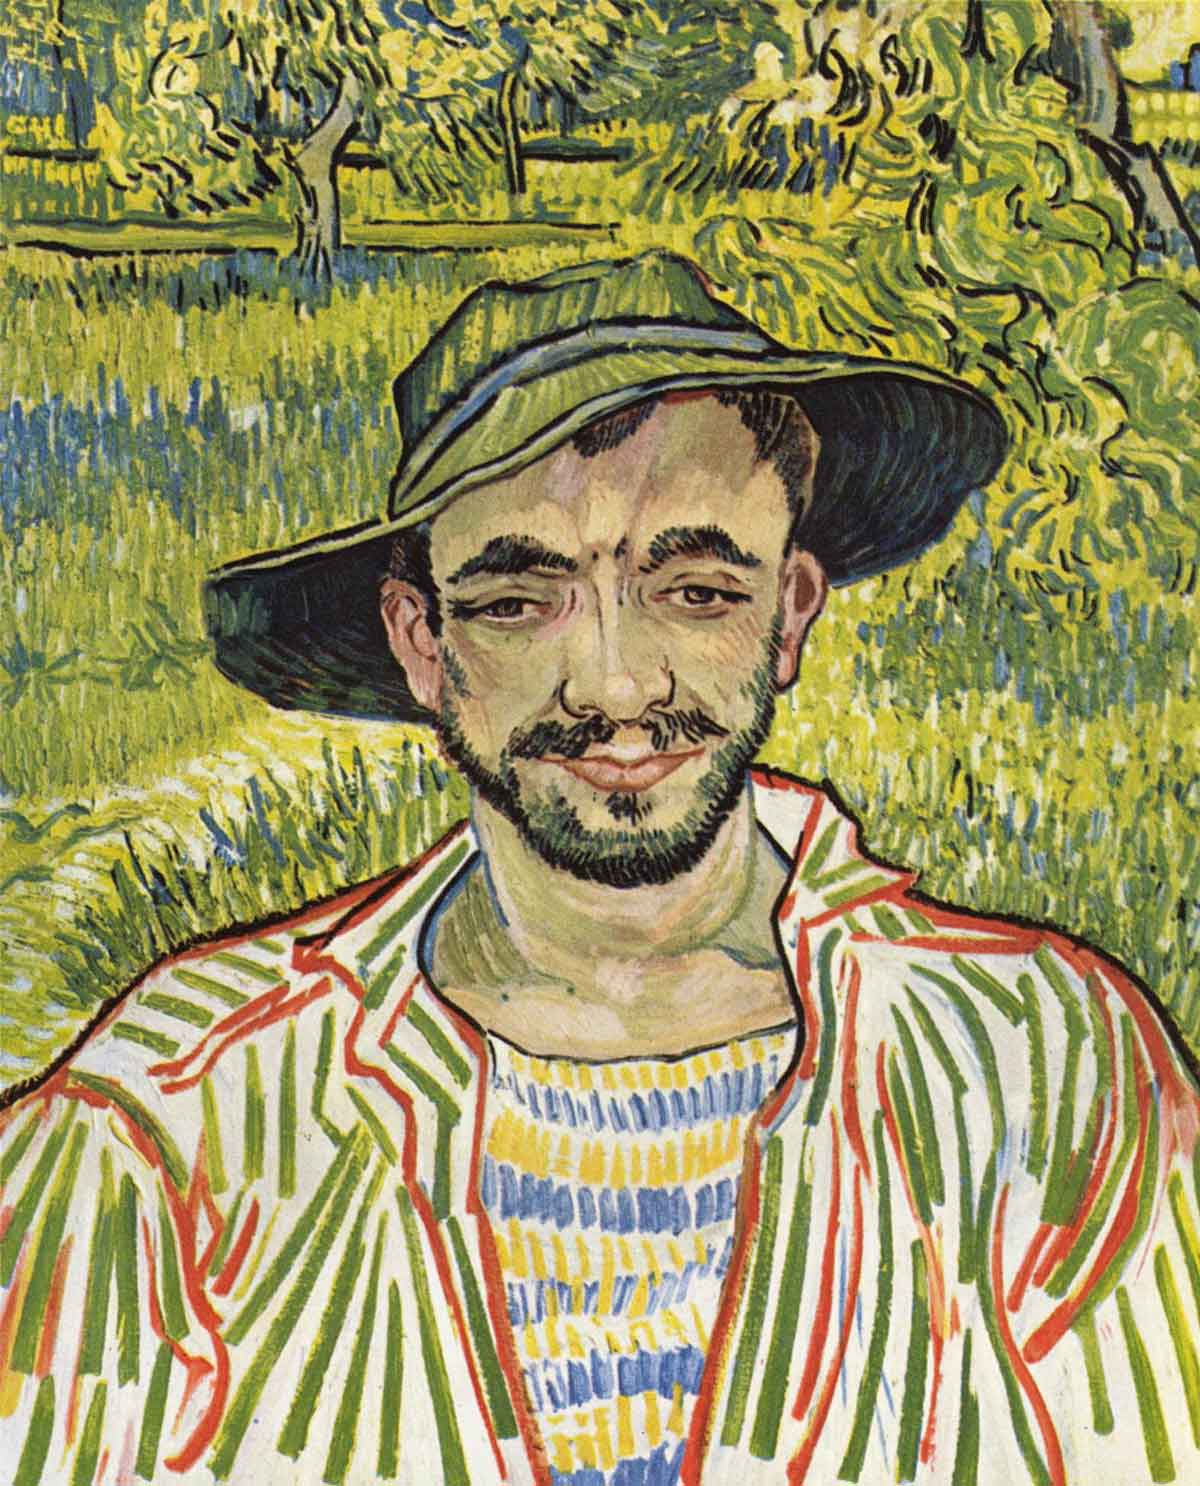 Stolen painting by Van Gogh: The Gardener (Young peasant, 1889)